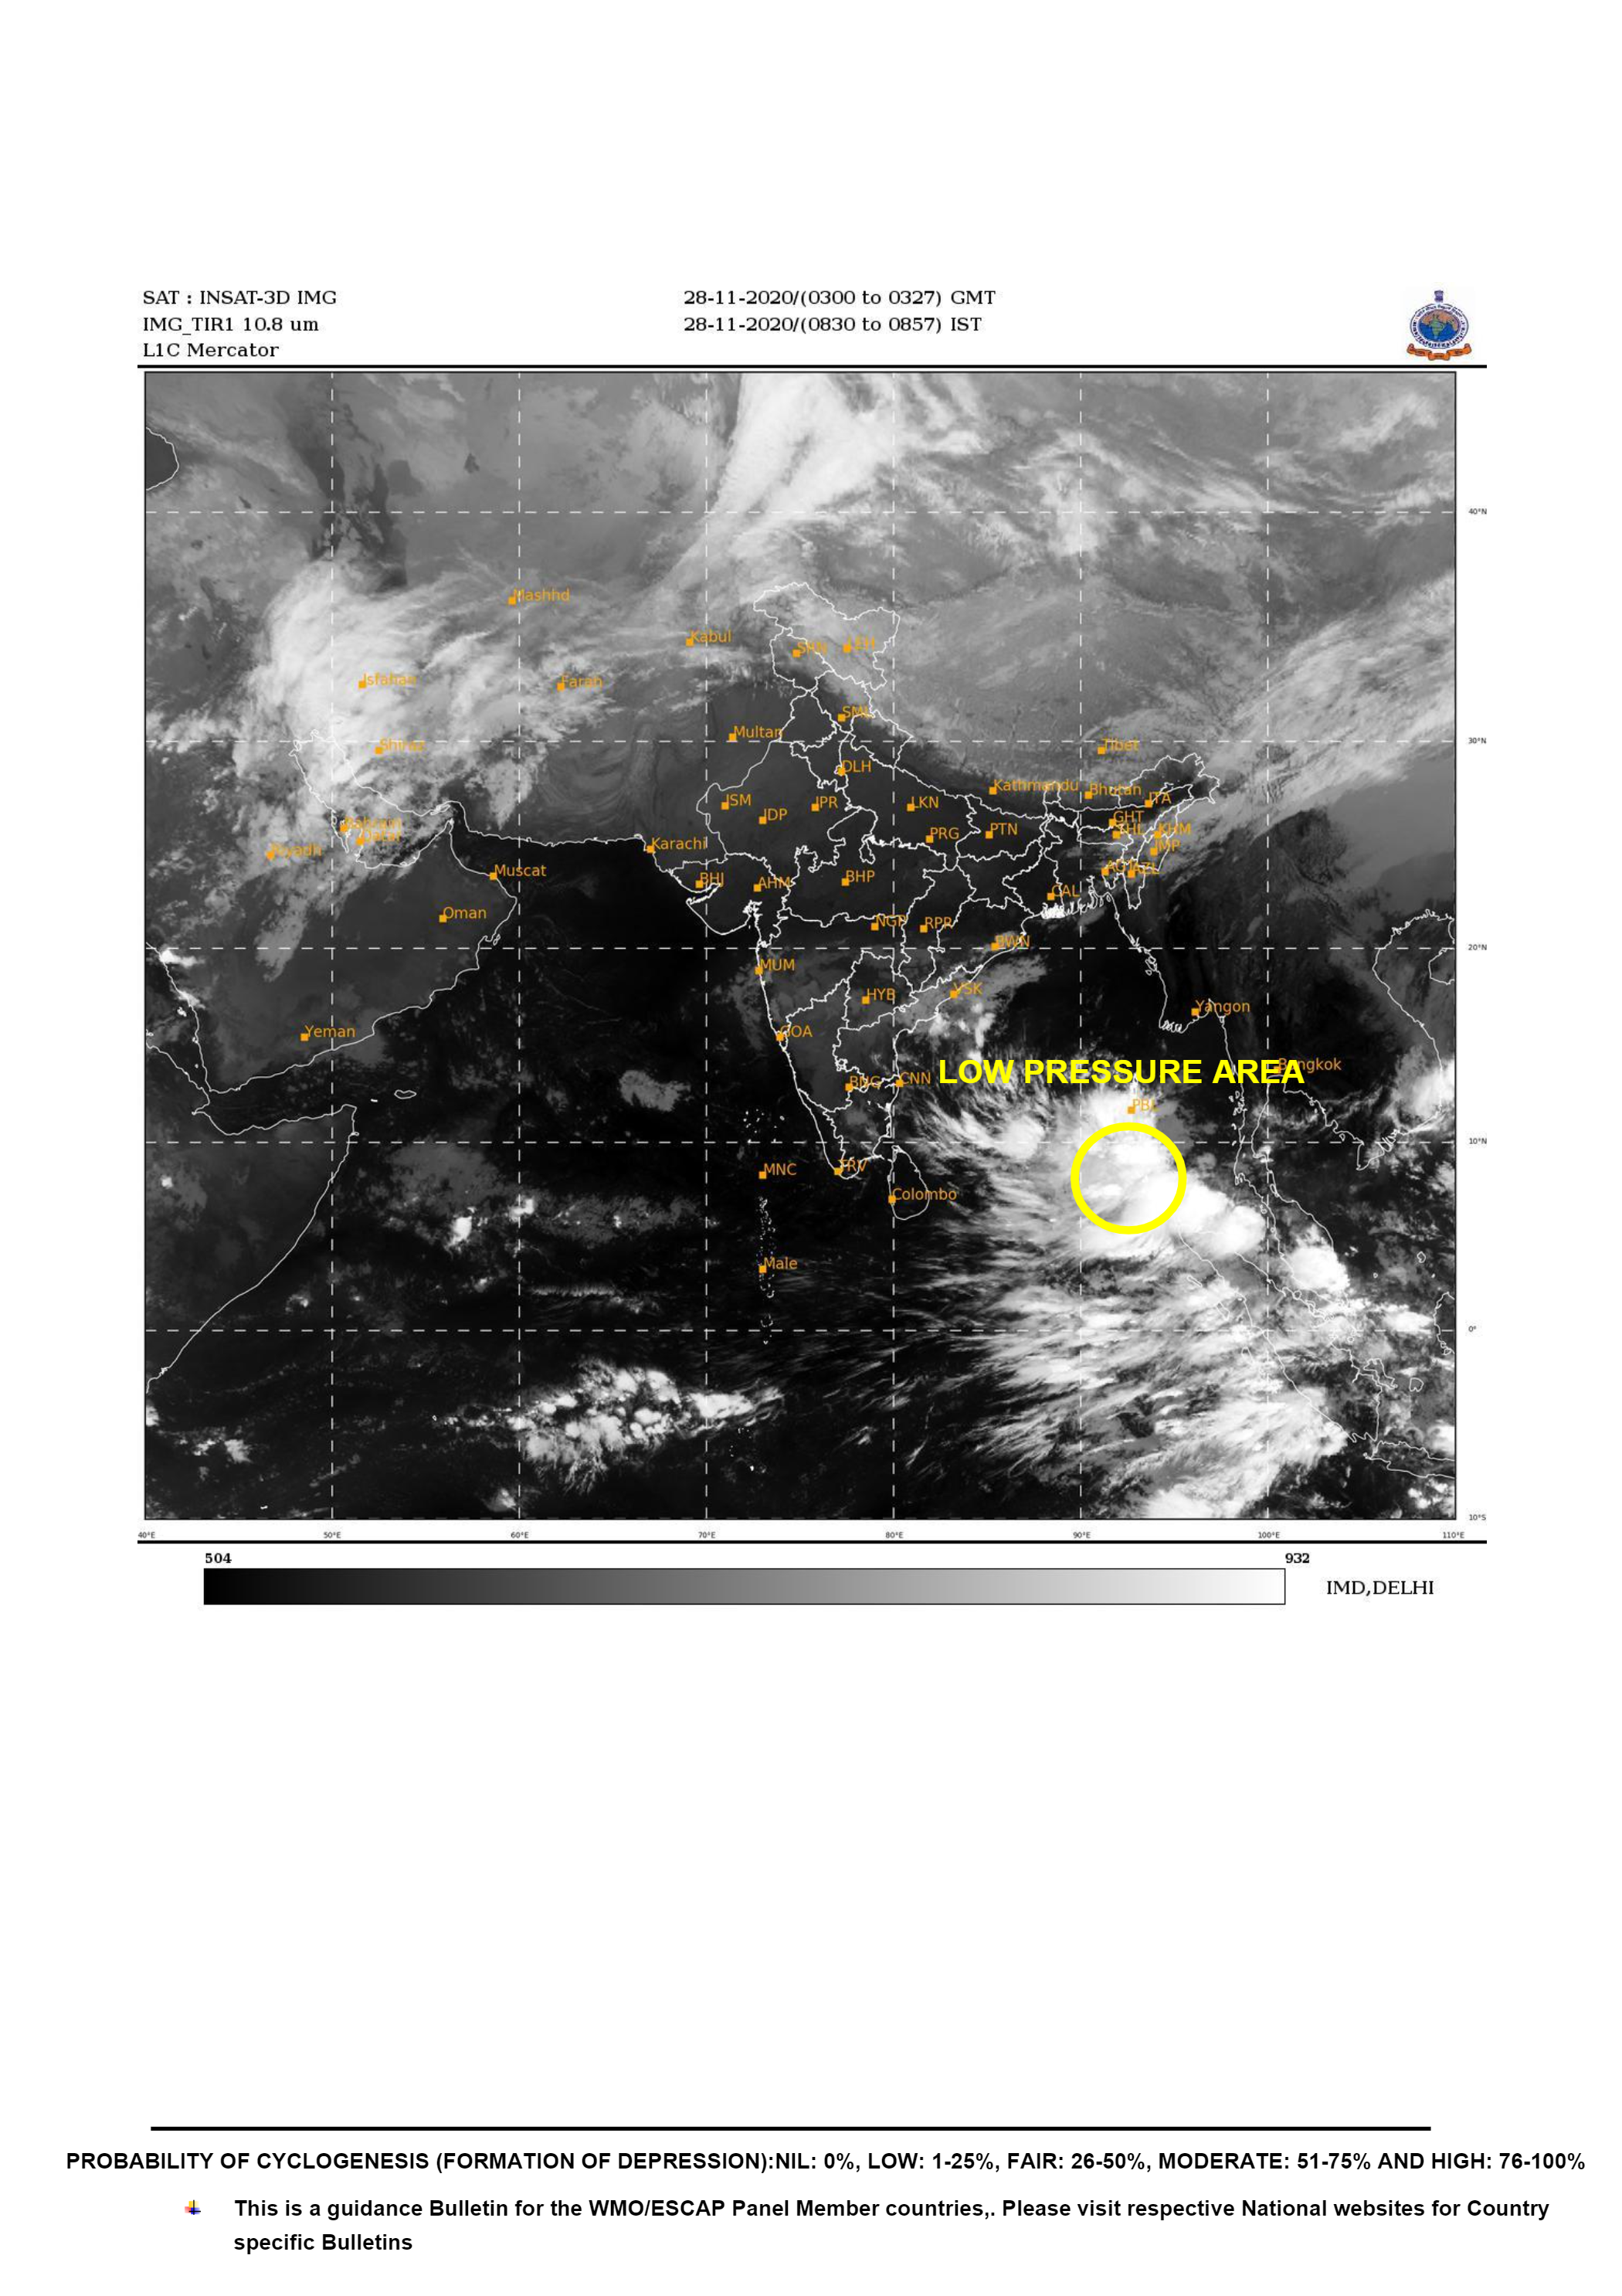 2_Tropical Weather Outlook based on  0300 UTC of 28.11.2020_5fc1fc2a246bc.png